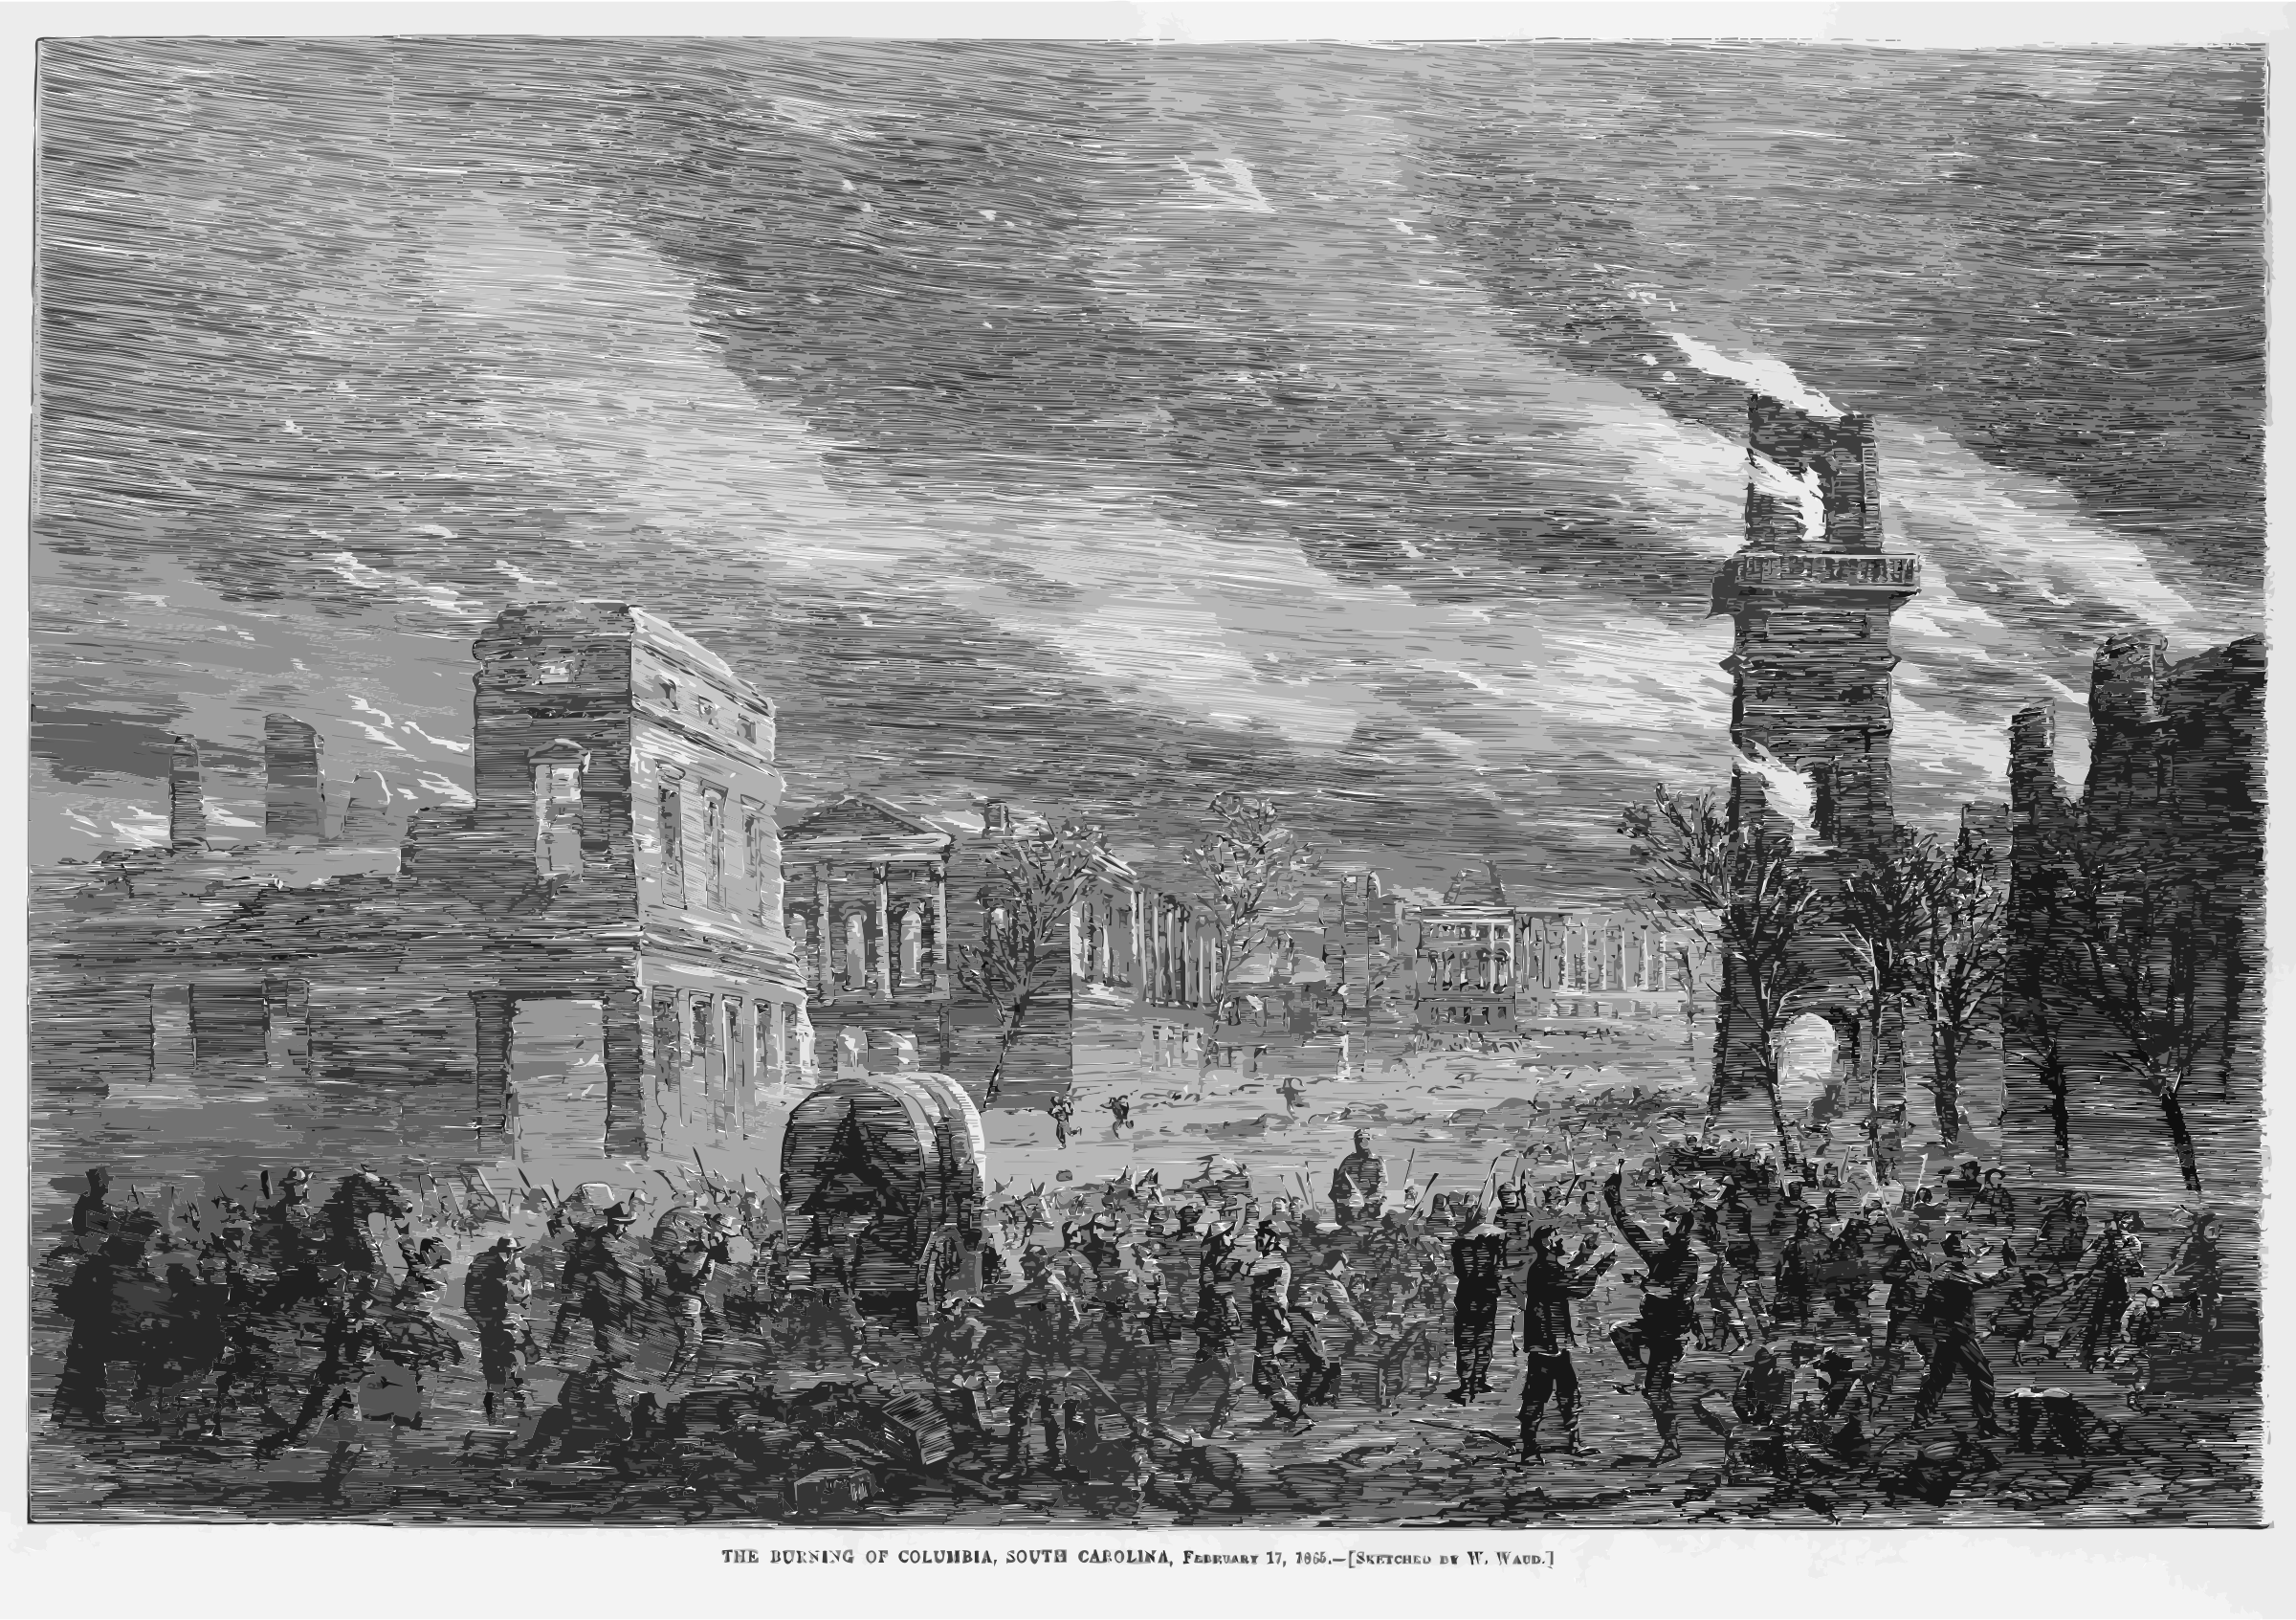 The burning of Columbia, South Carolina, February 17, 1865 by 5n9sst+earkddiows40g